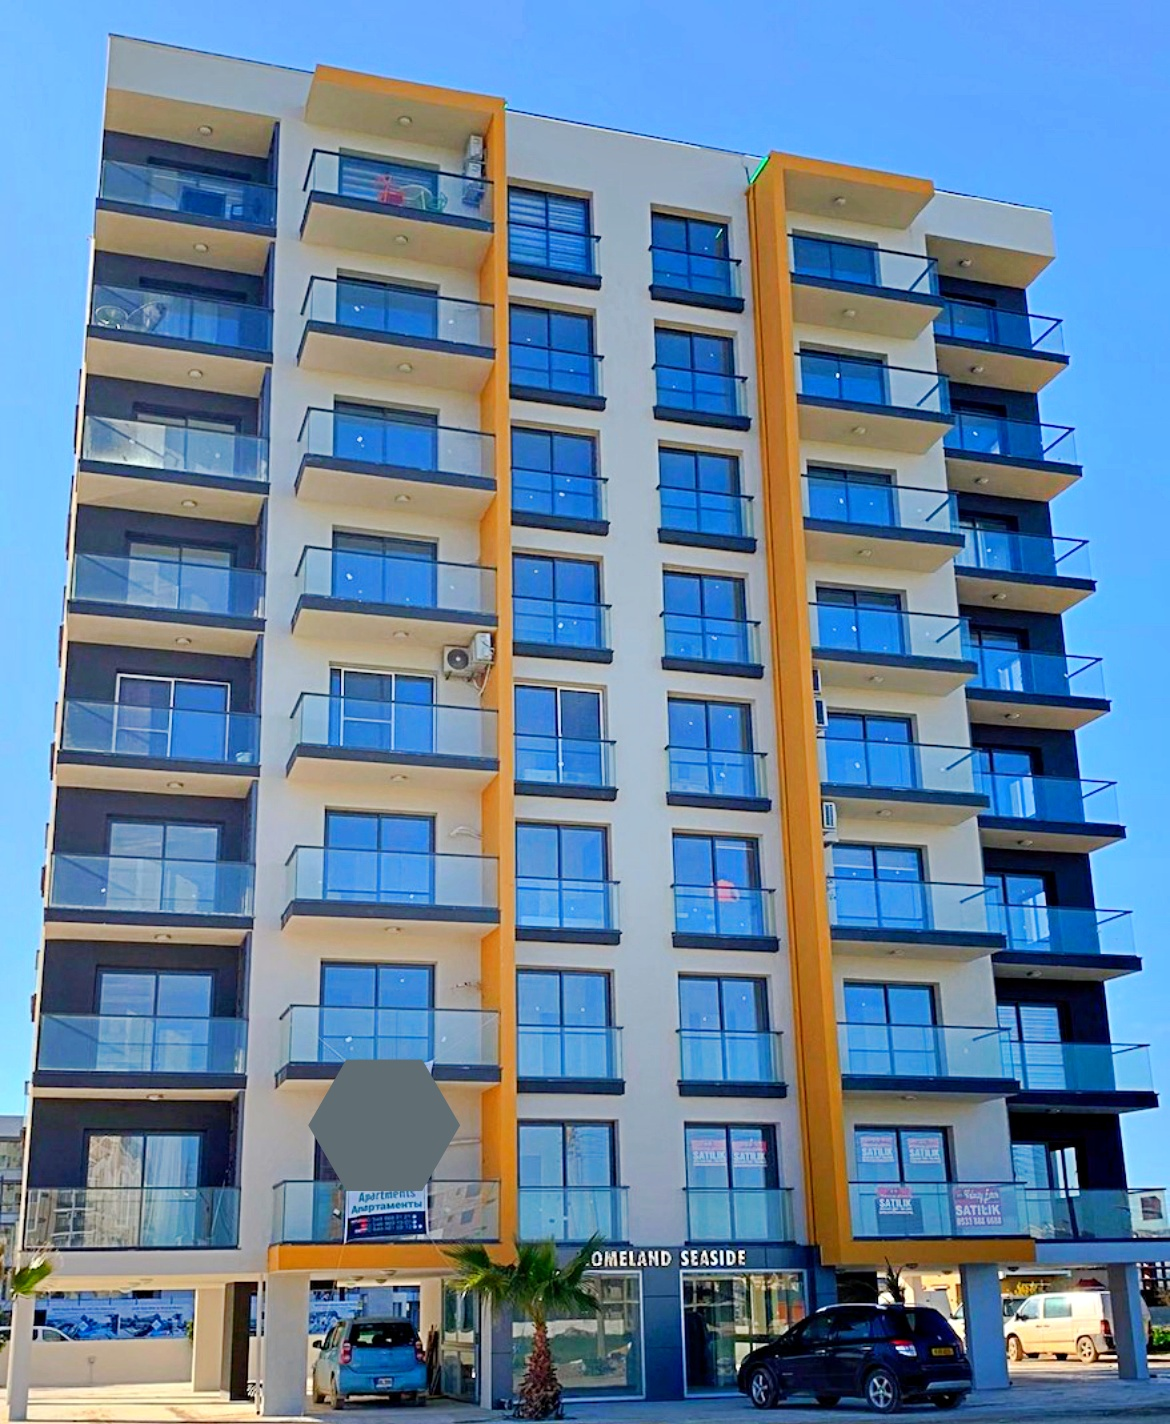 Studio apartments in a new residential complex in the area of Long Beach.